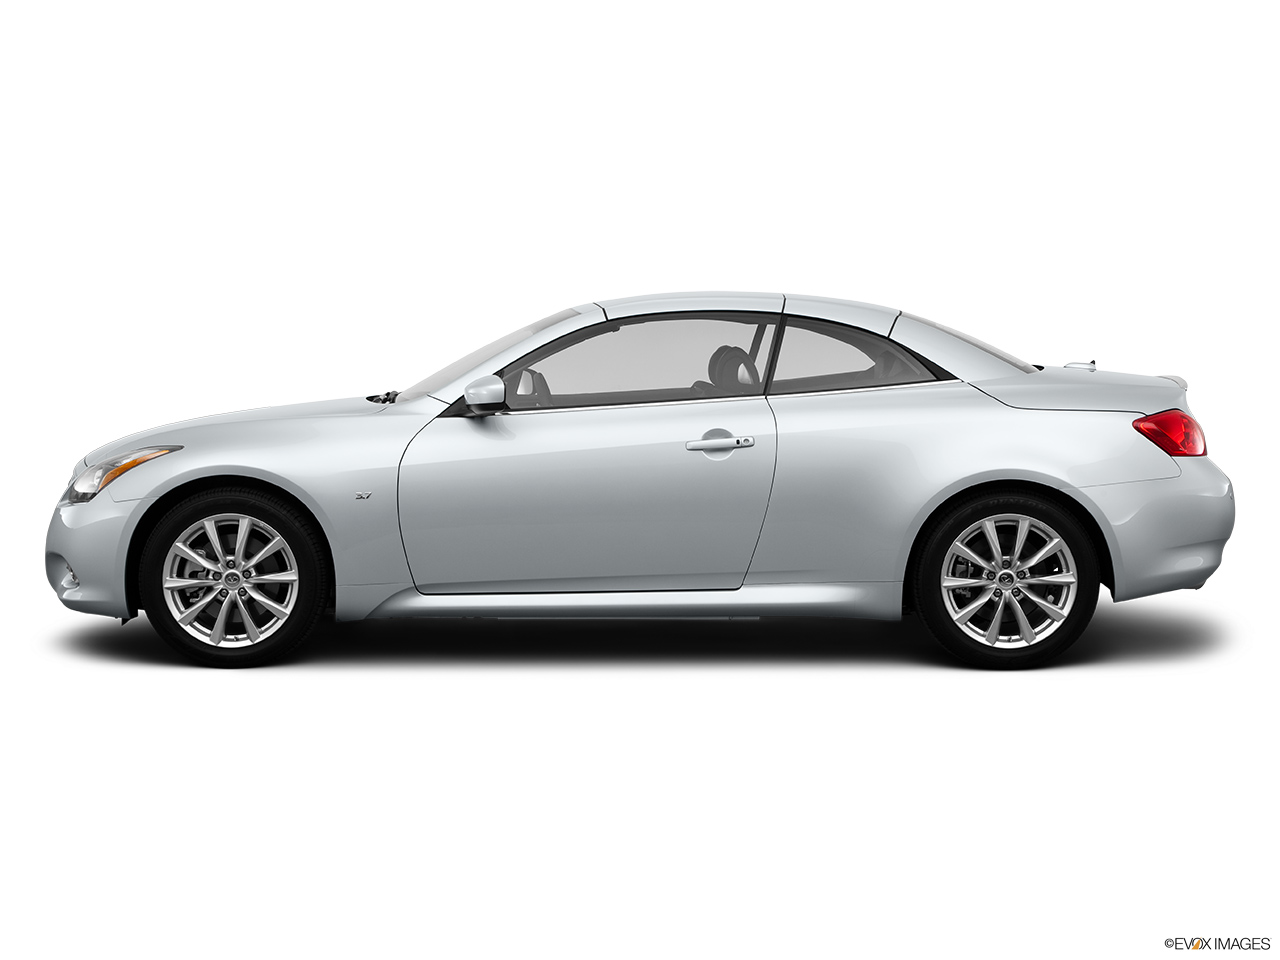 2 Door Convertible >> 2015 Infiniti Q60 Convertible 2 Door - Drivers side profile, convertible top up (convertibles only)